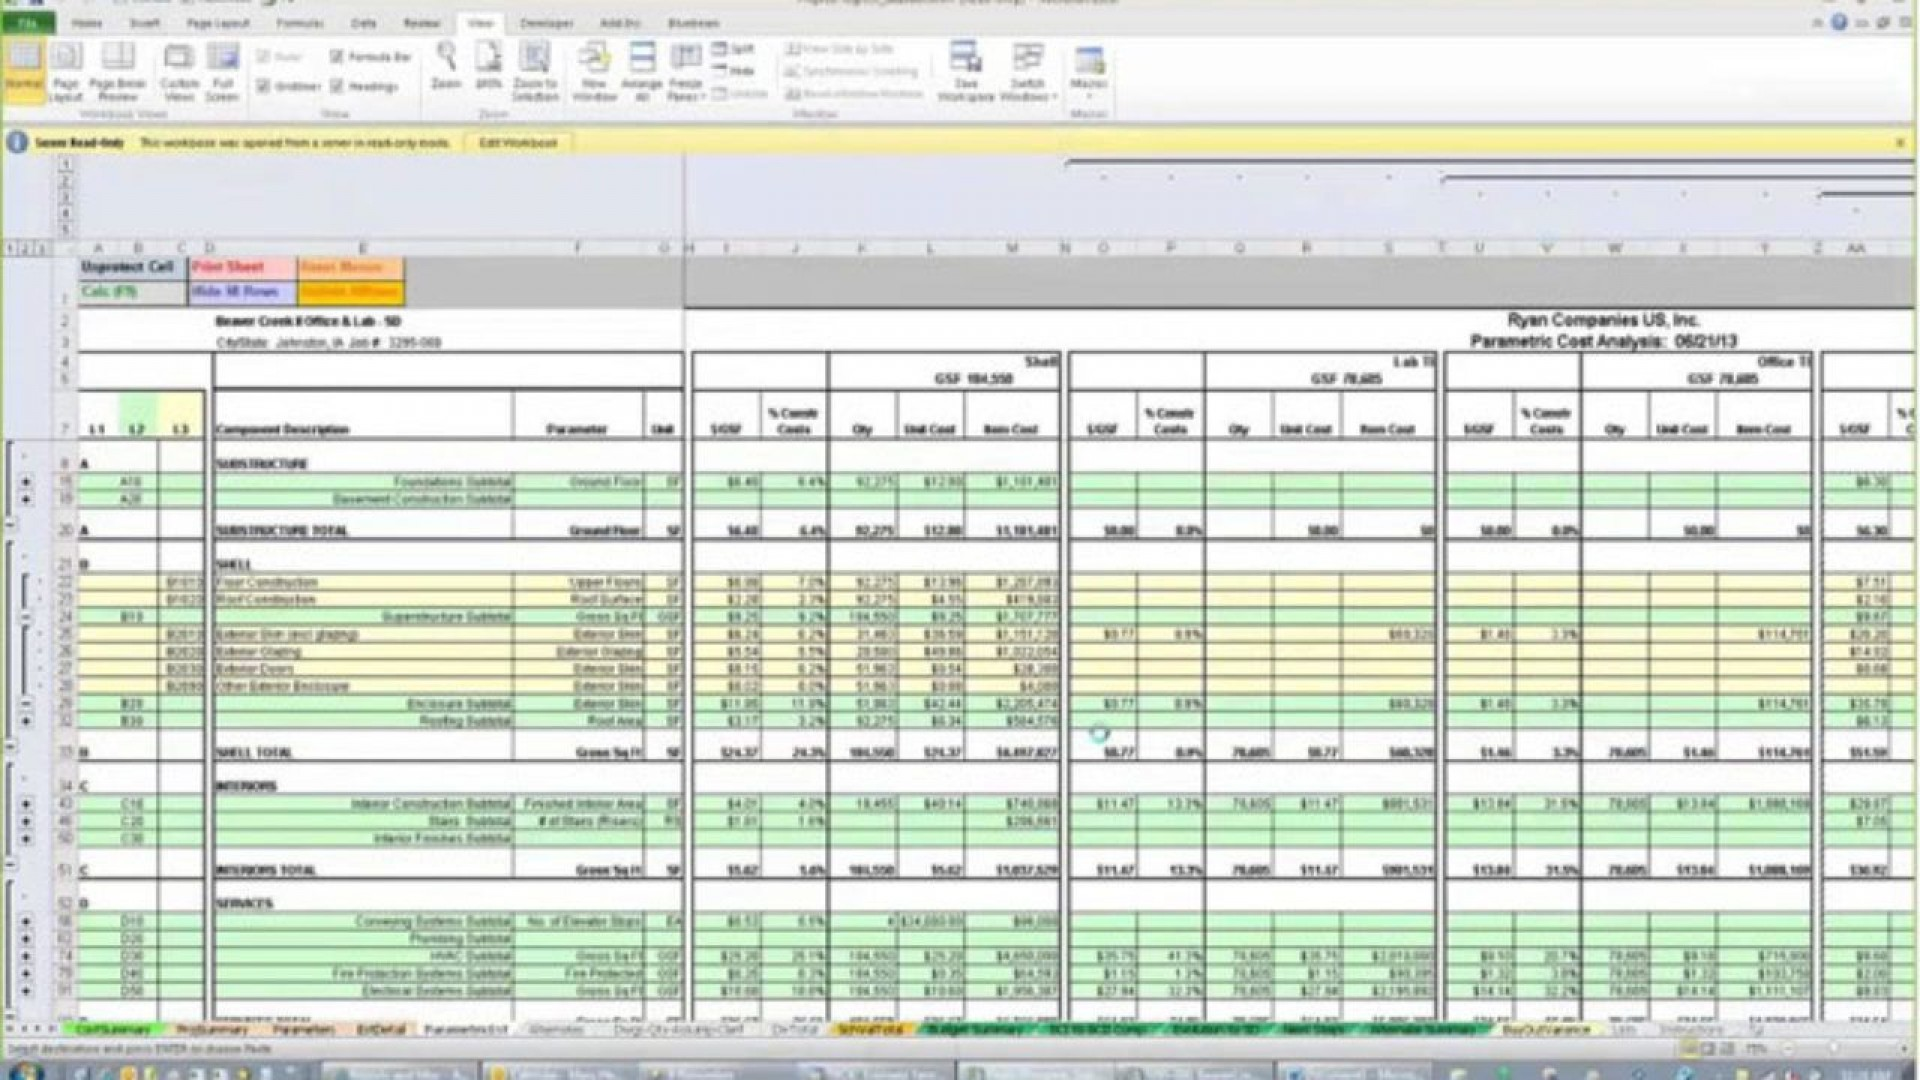 003 Exceptional Construction Cost Estimate Template Excel Concept  House Free In India Commercial1920